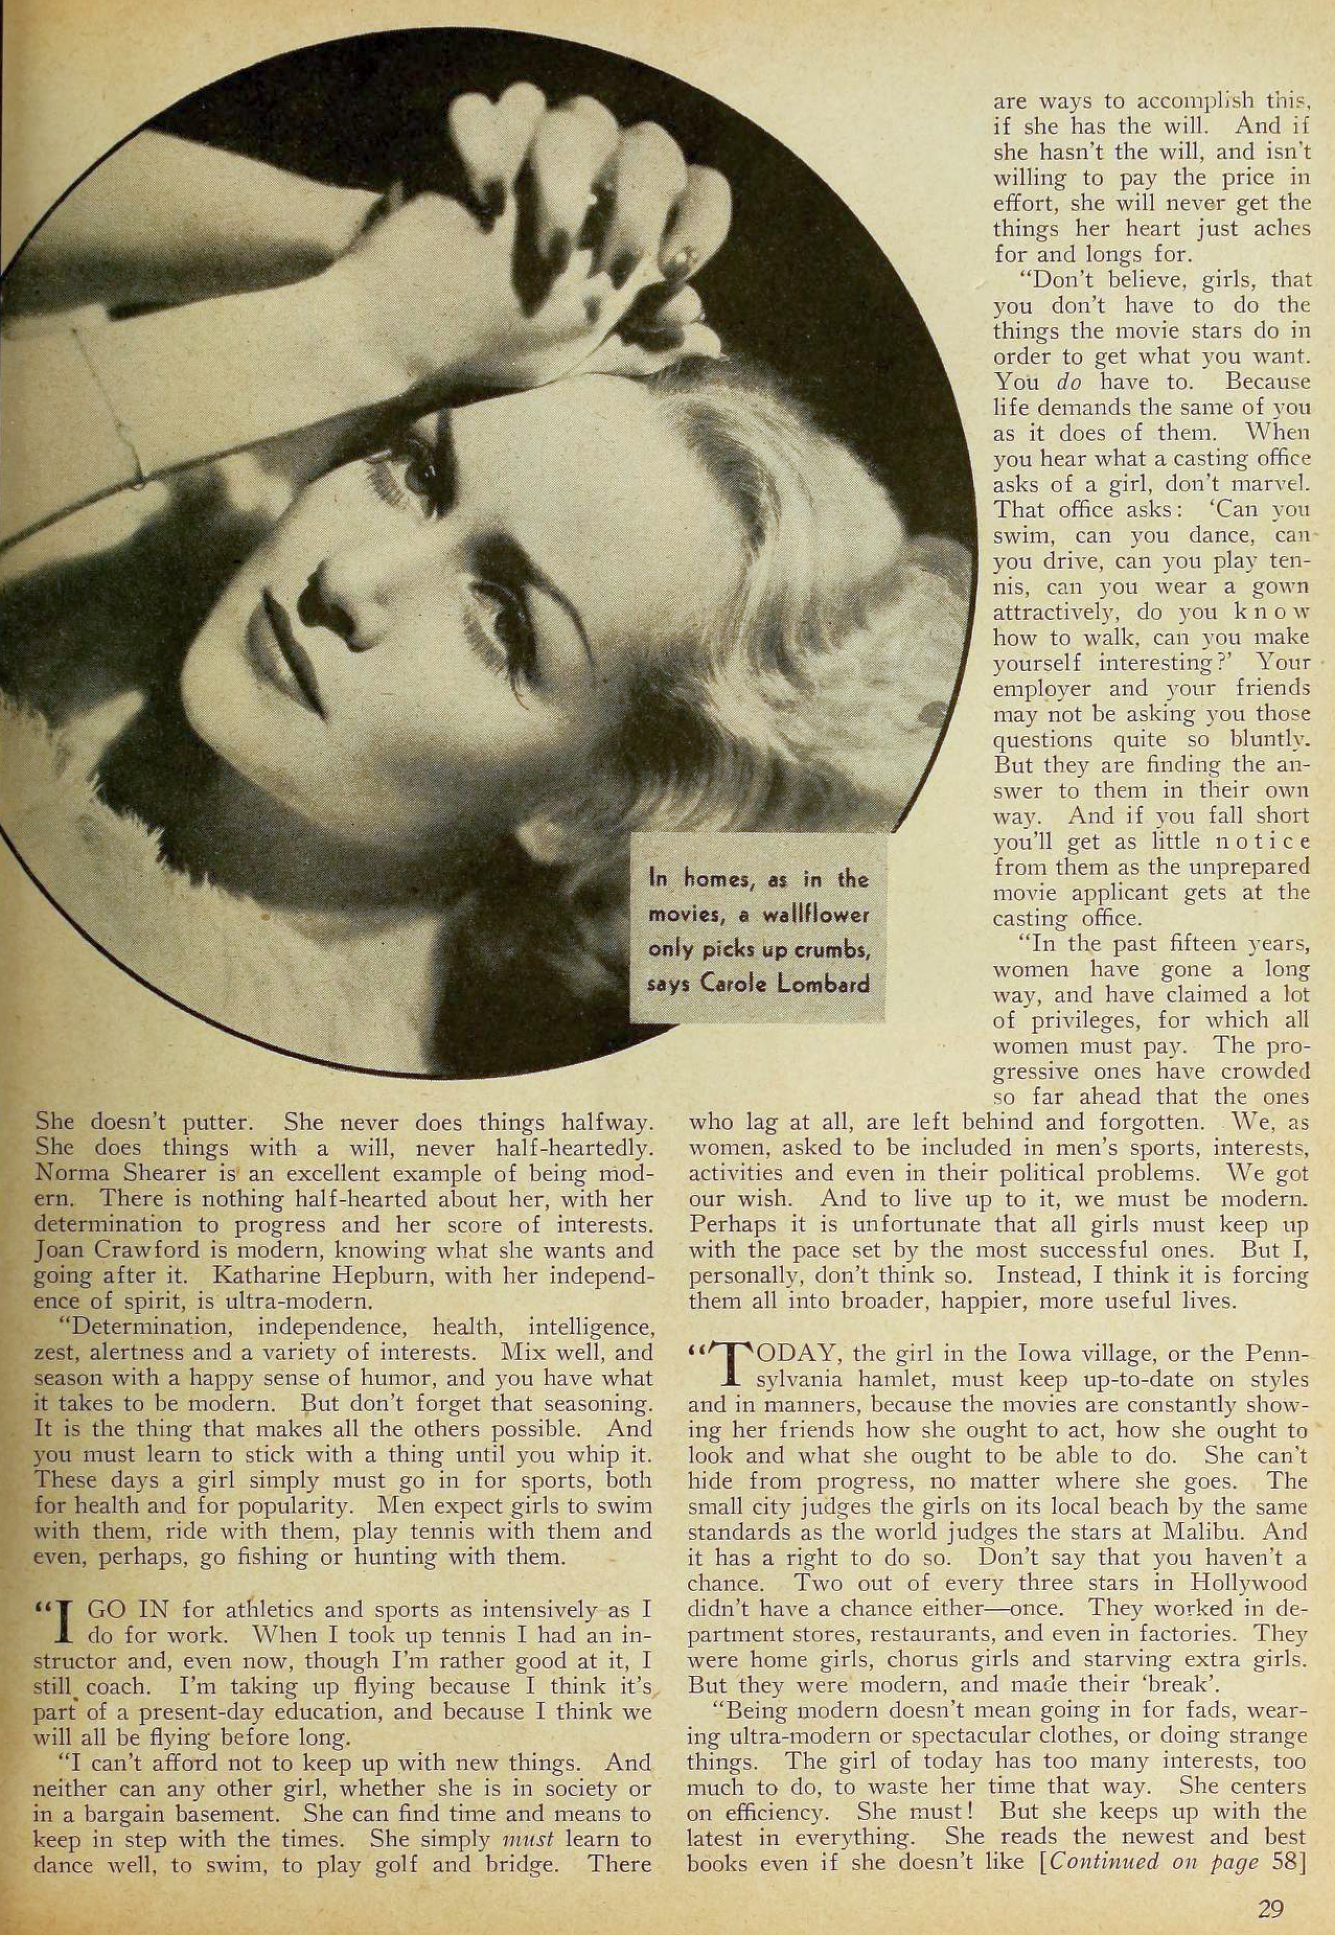 carole lombard motion picture aug 1935 be modern 01a